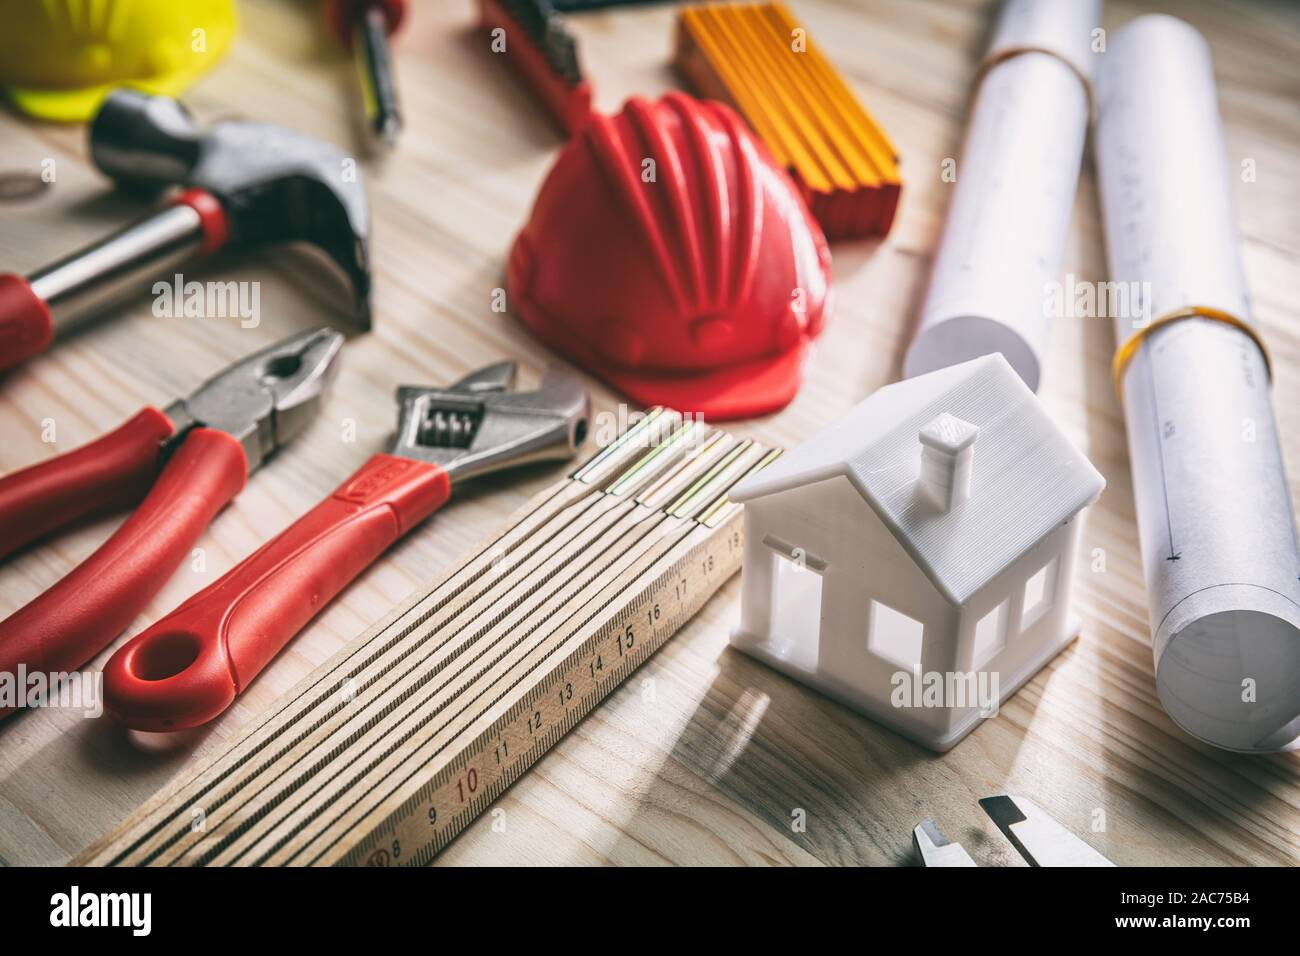 Construction, house renovation concept. Hand tools, hard hats and project blueprints on wood, close up view Stock Photo